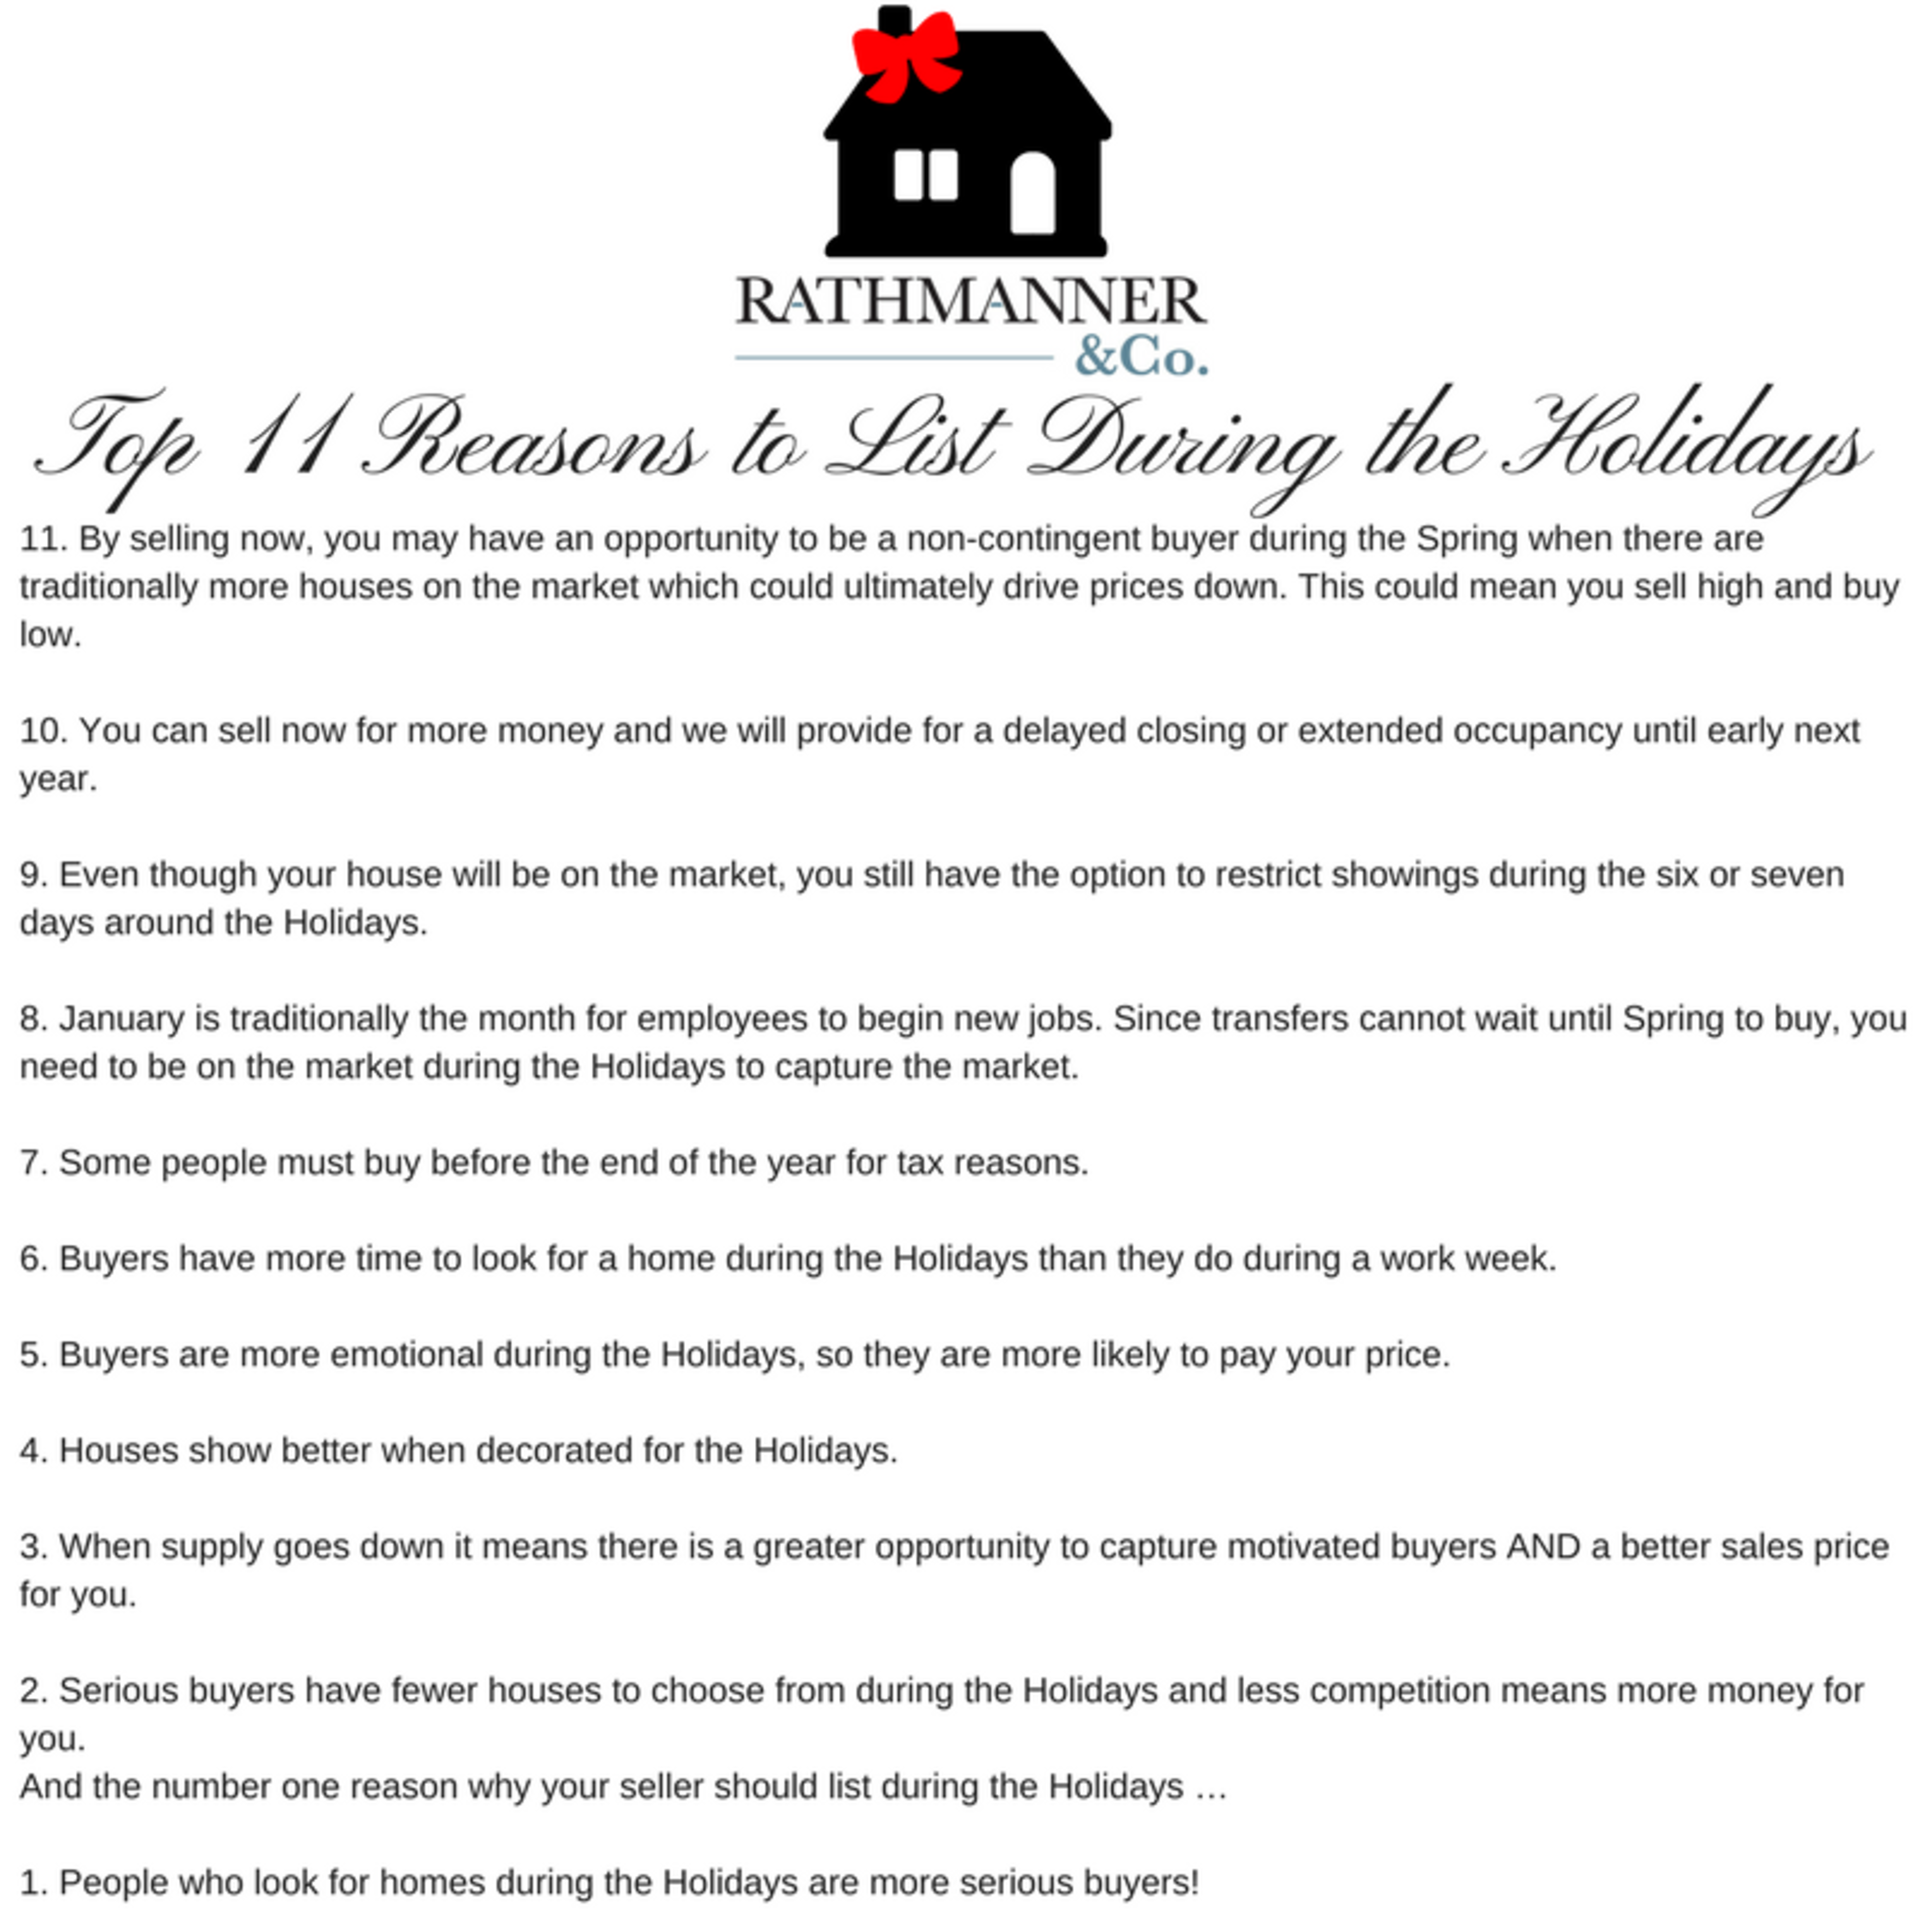 Top 11 Reasons to List Your Home During the Holidays!